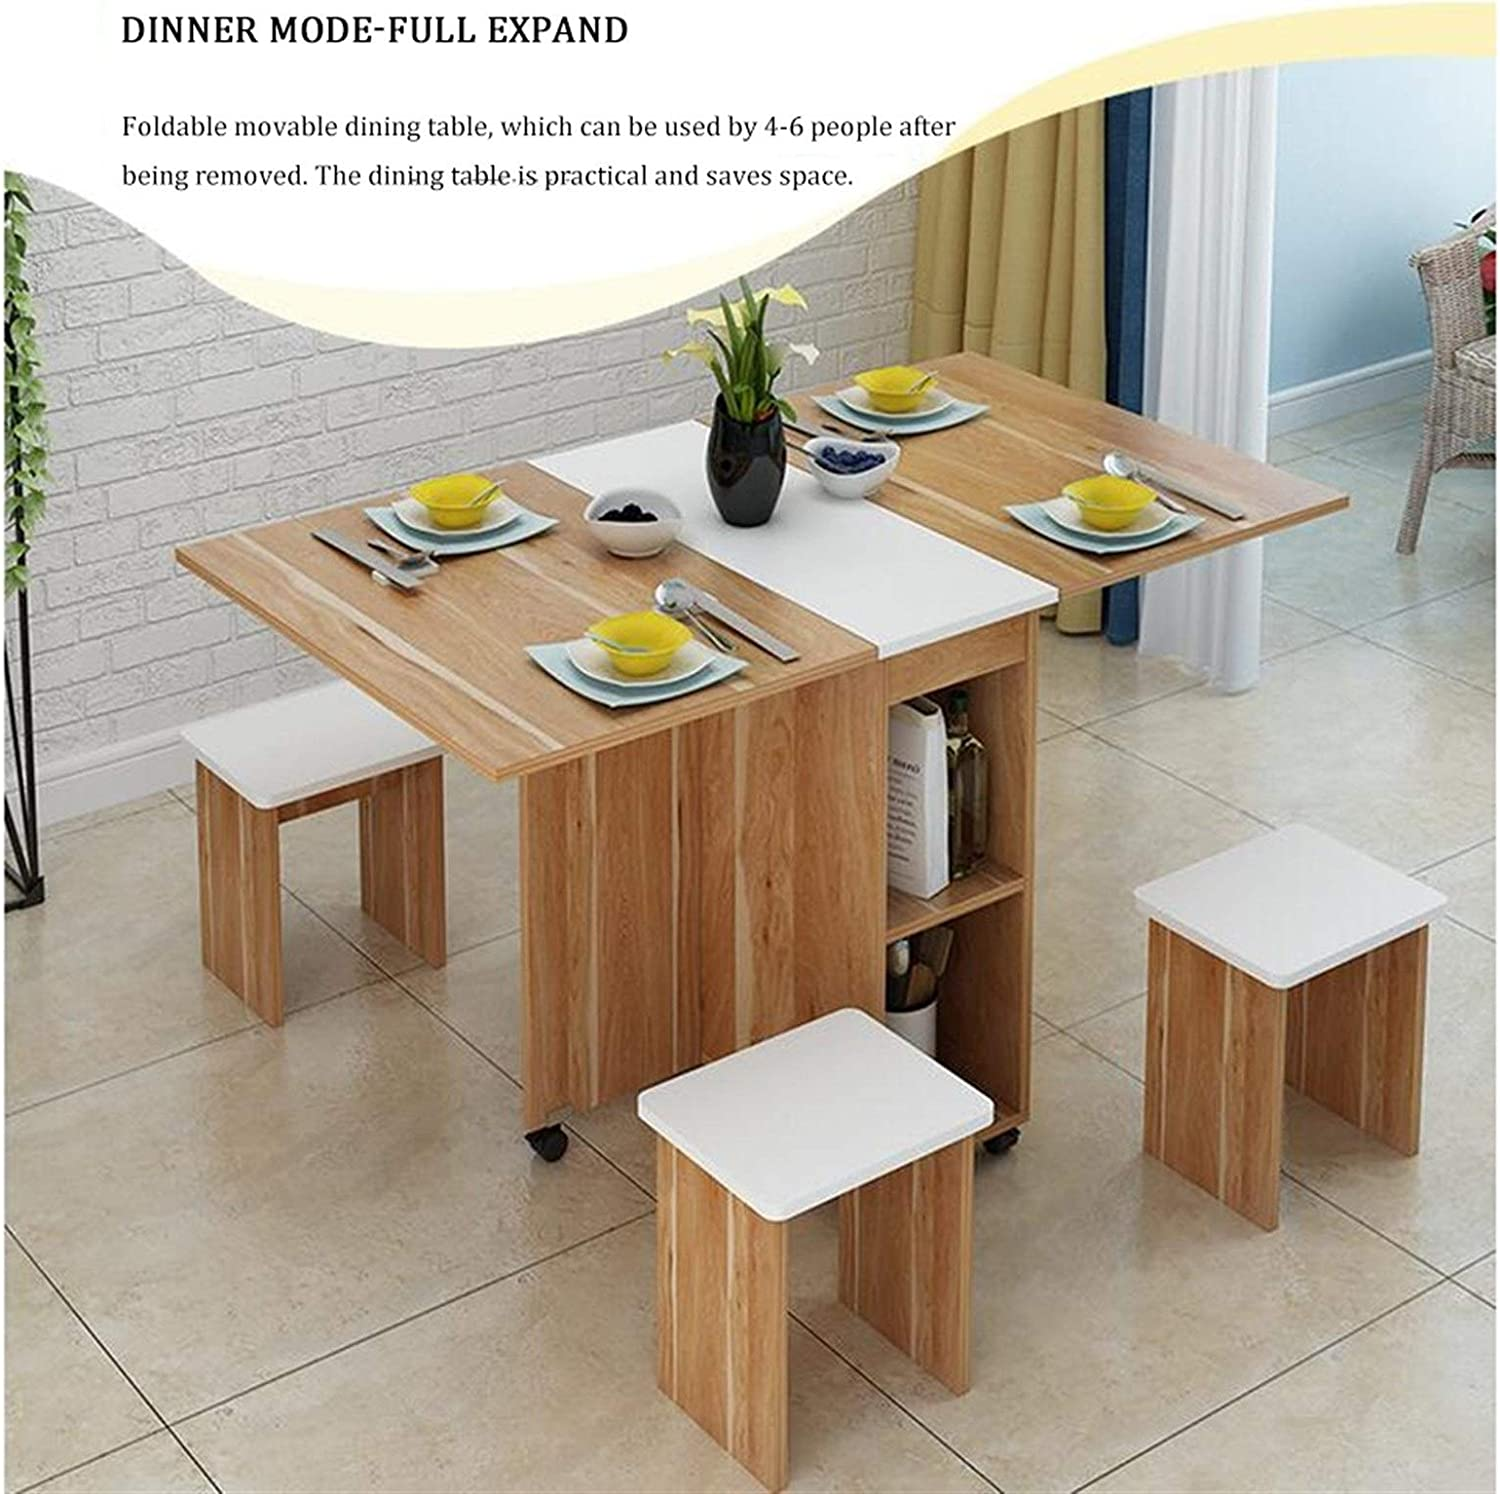 Maryyun Drop Leaf Dining Table Multifunction Large Capacity Storage Drop Leaf Table With 4 Chairs Color Maple Amazon Co Uk Kitchen Home